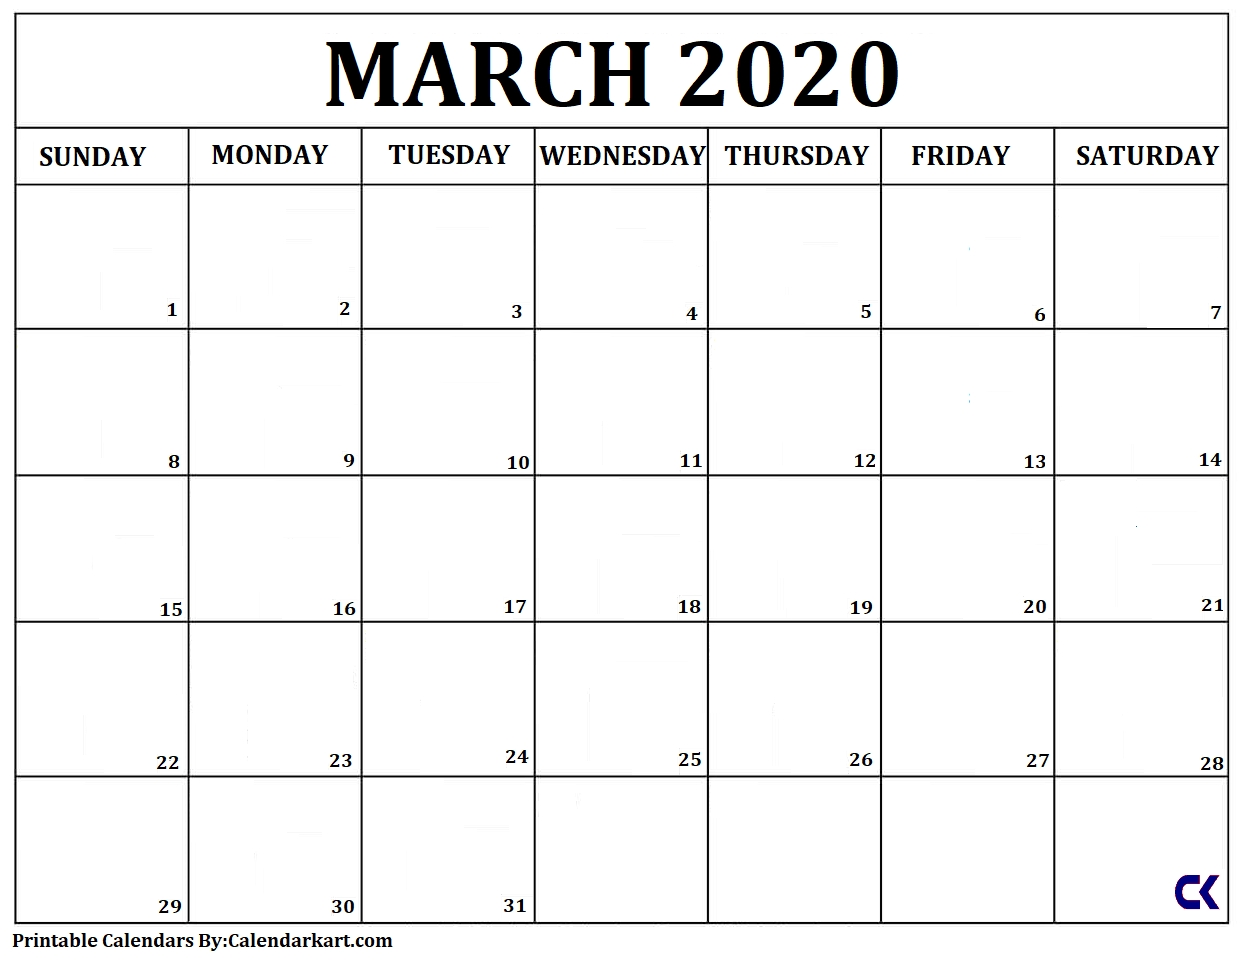 Free Printable Calendars 2020 And 2021: Monthly & Yearly